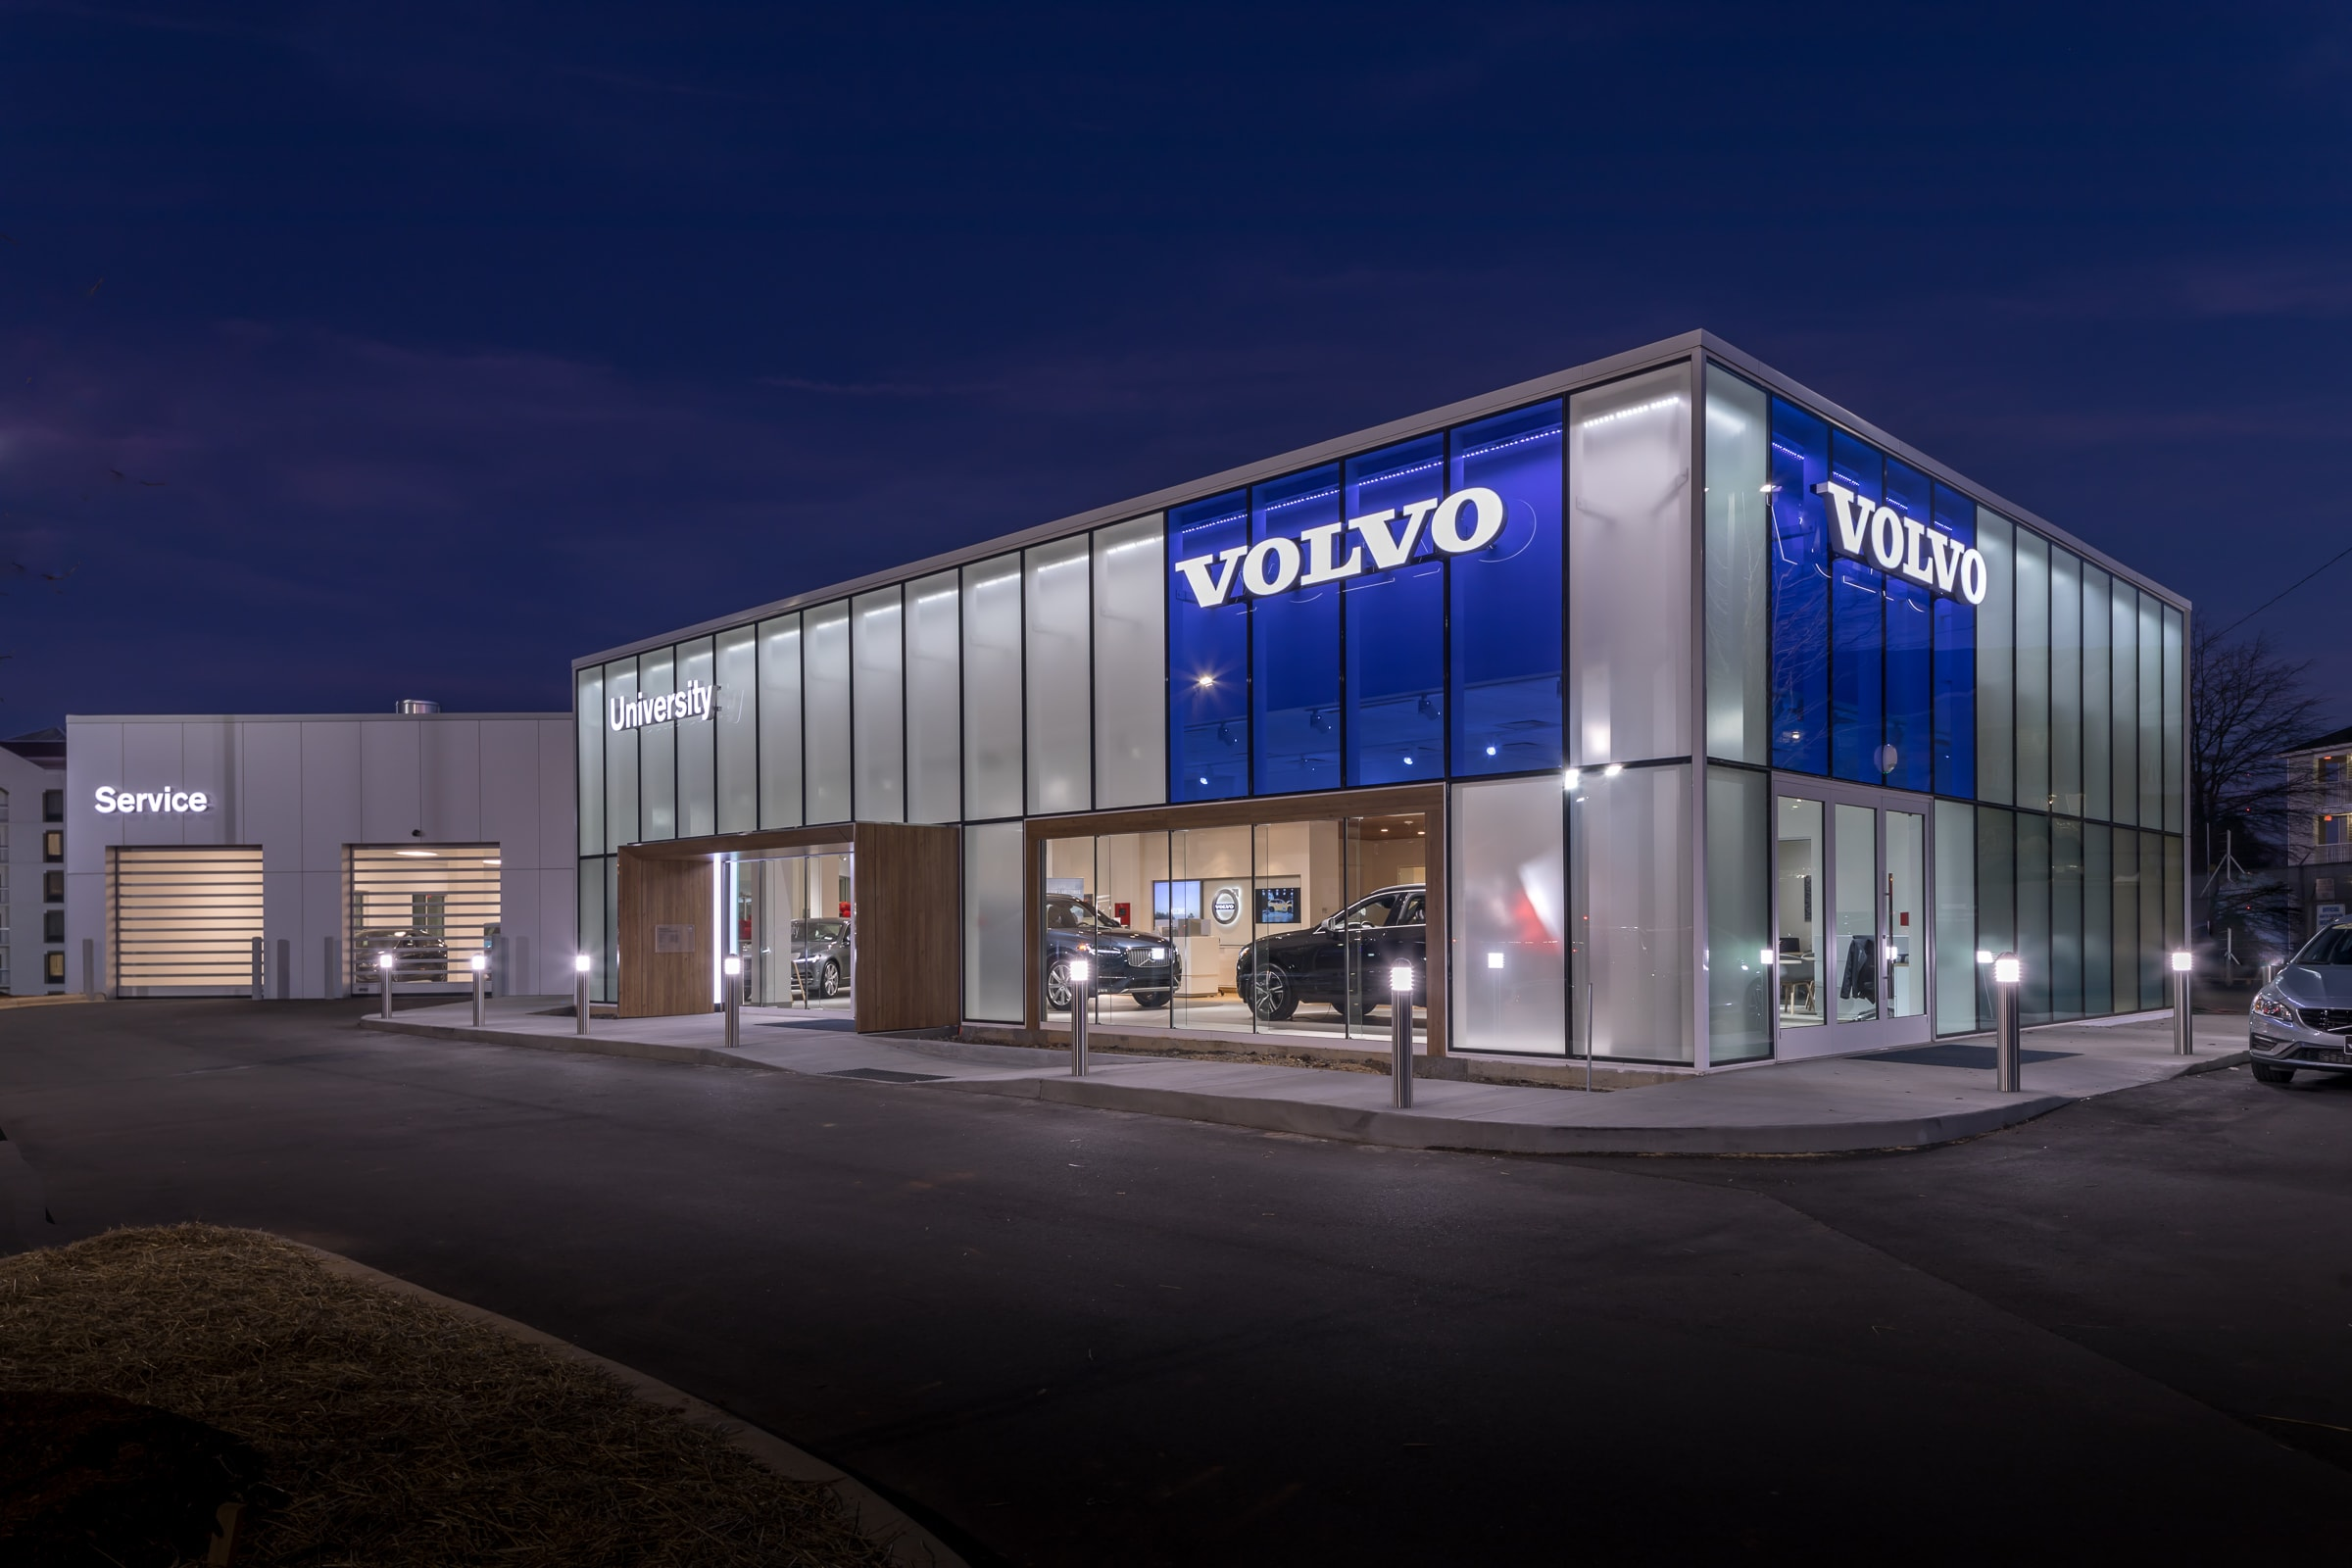 Charlotte Volvo Dealer | About University Volvo